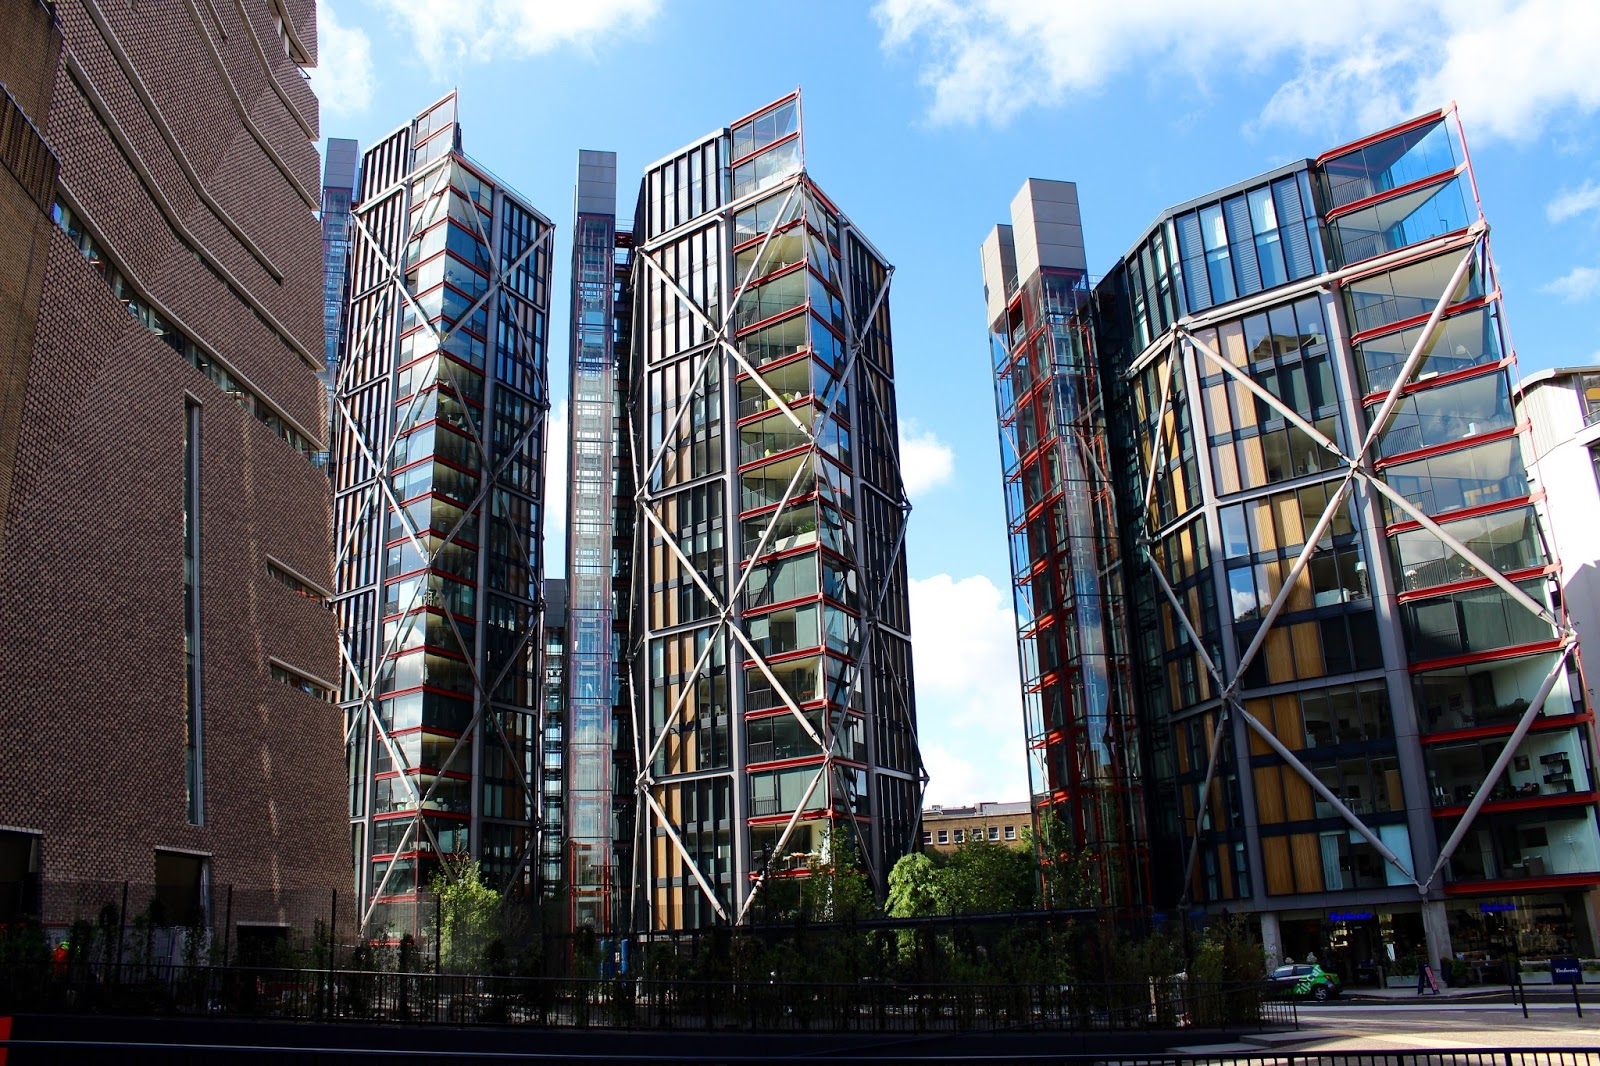 New flats at the Tate....costing 5.95 million!!